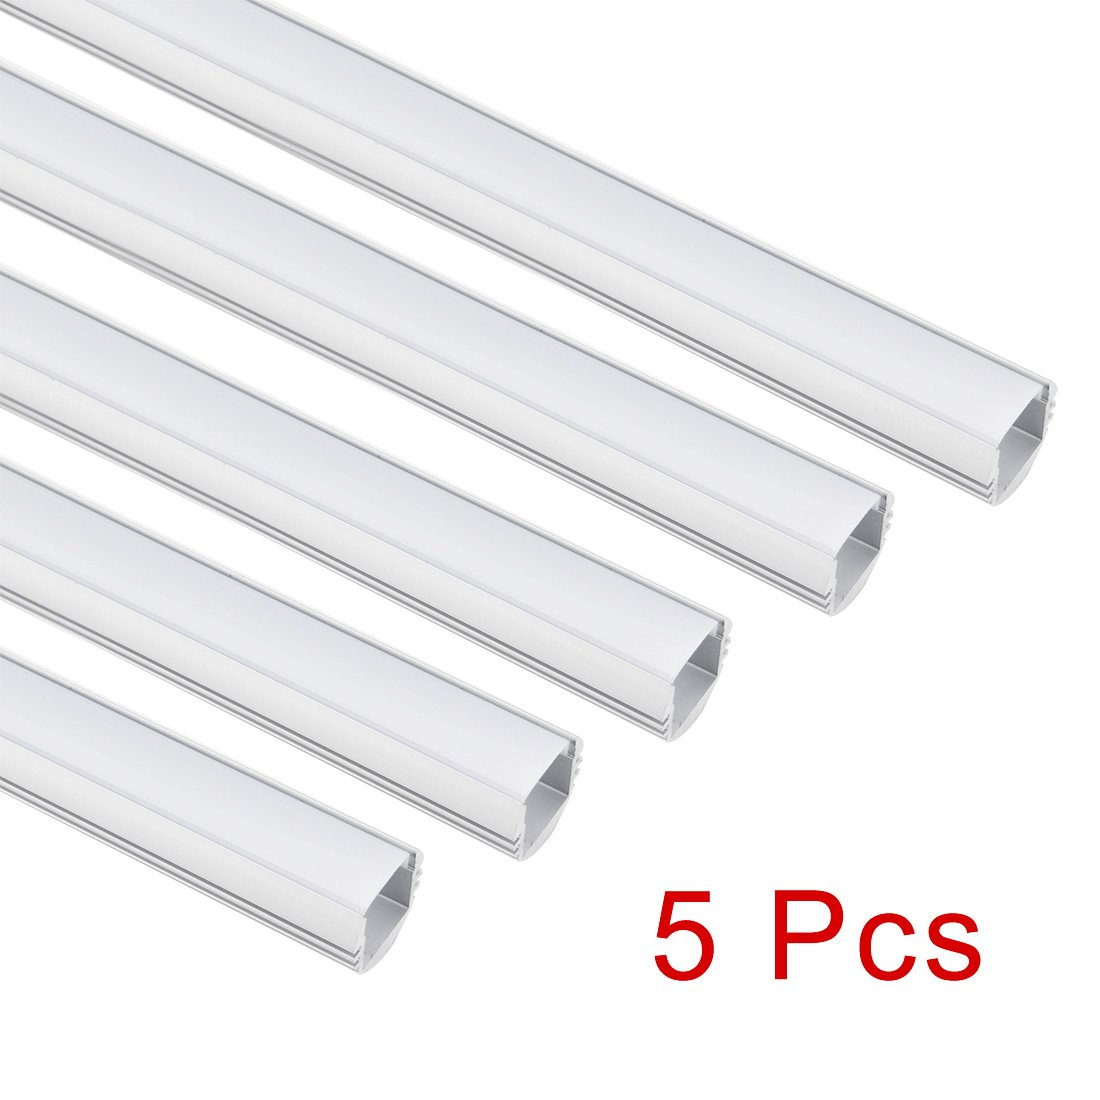 Uxcell 5pcs Cn 615 05m 183mm158mm Led Aluminum Wiring Diagram Channel System W Cover For Strip Light Installations Industrial Scientific